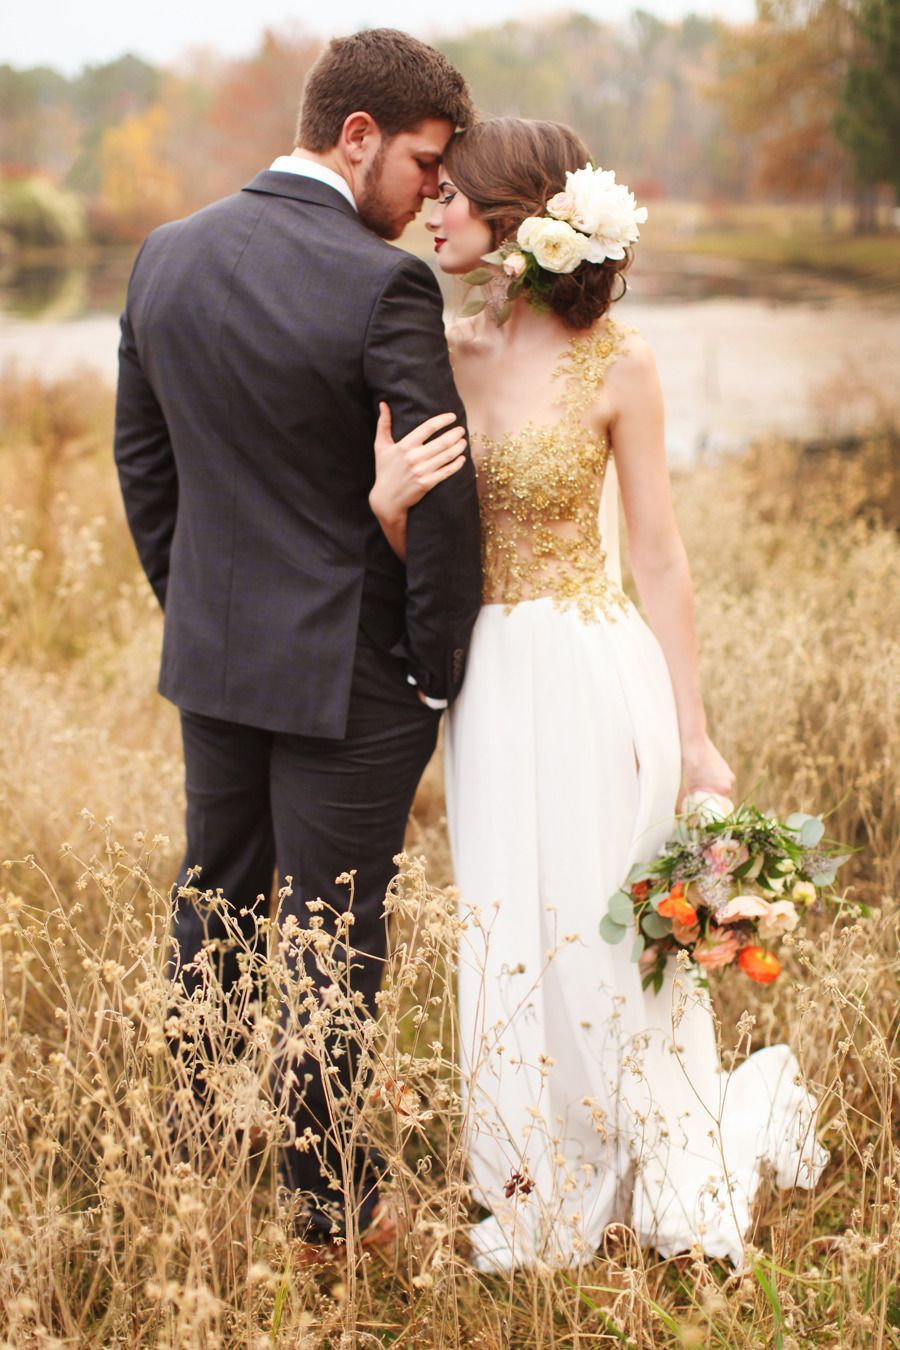 take a look at the best wedding photography poses in the photos below and get ideas